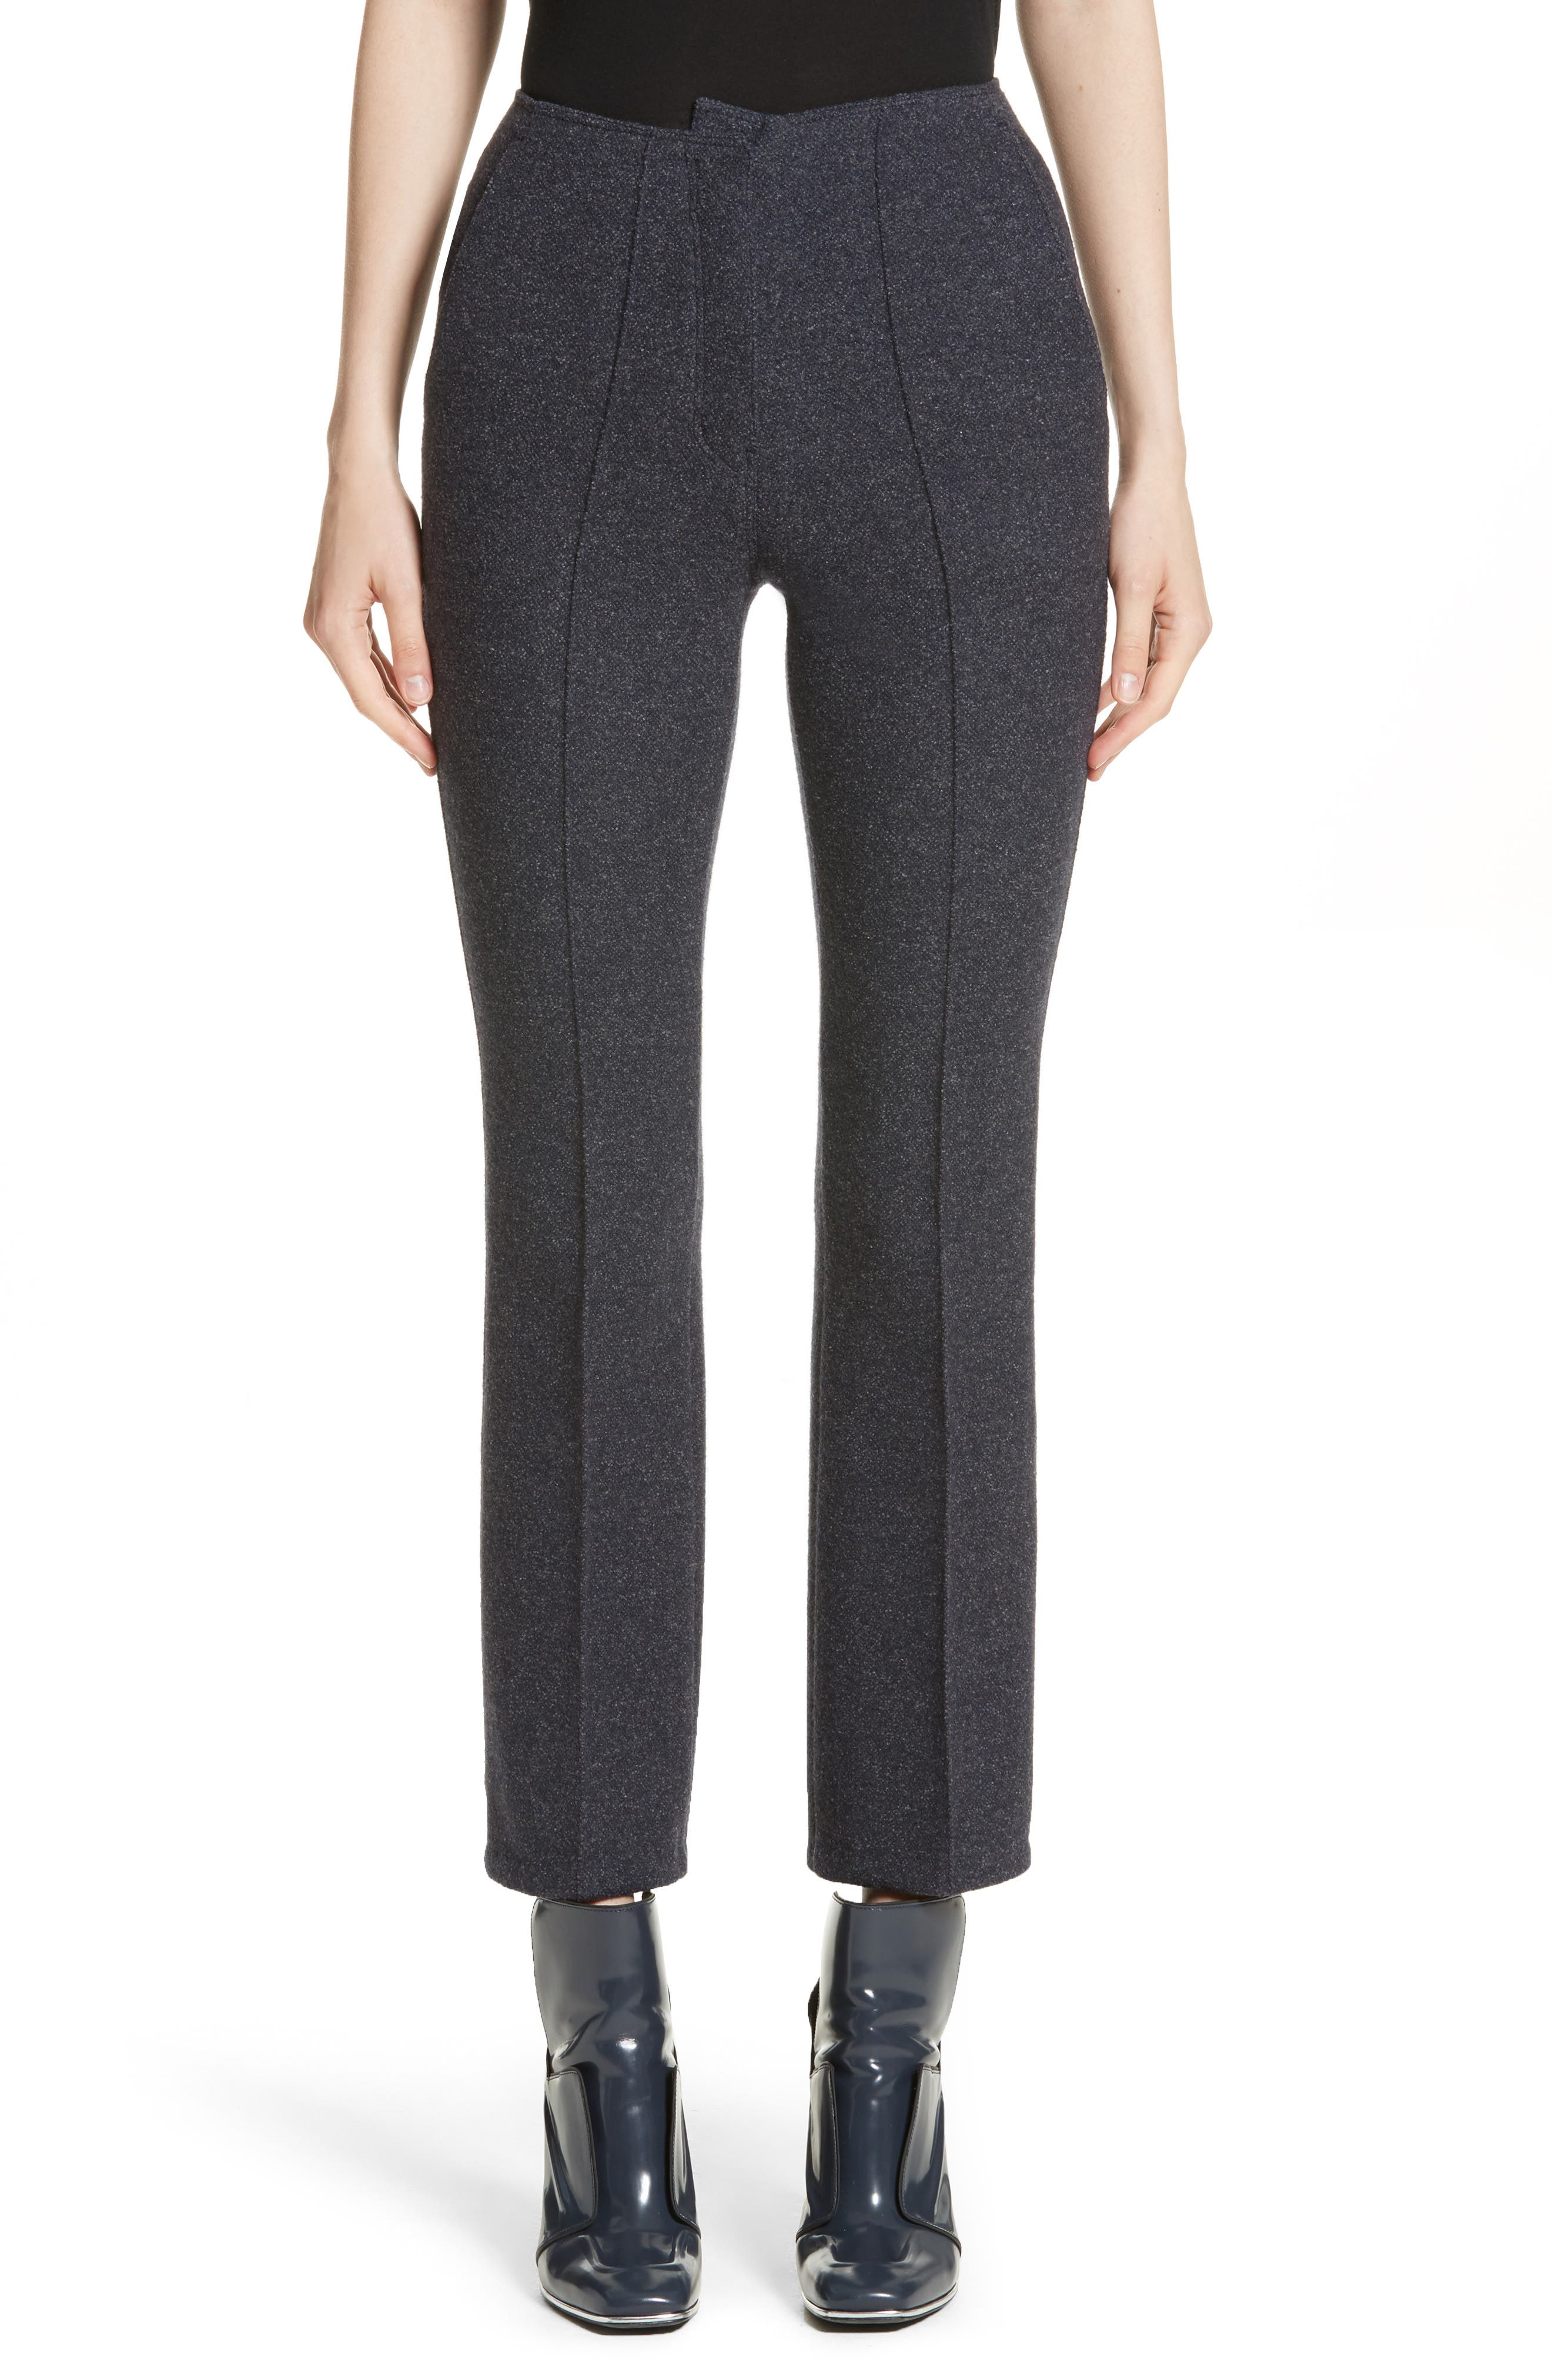 Atlein Tweed Galaxy High Waist Pants